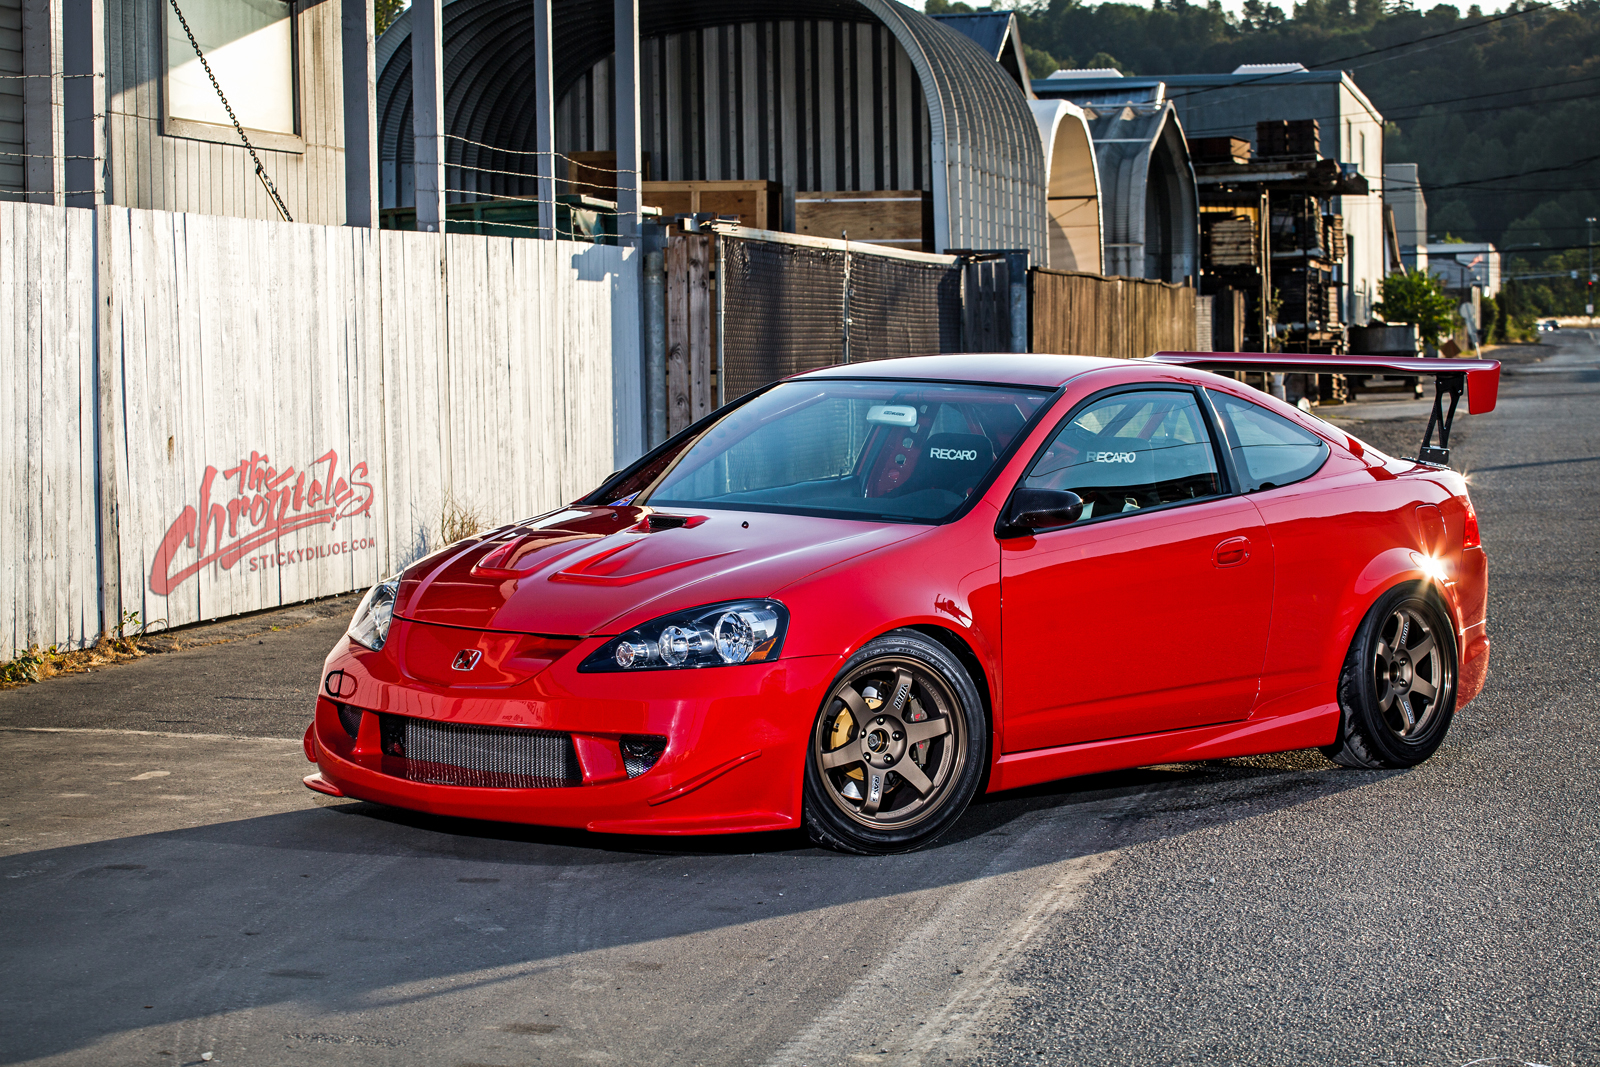 Exclusive Content: Unpublished Photos of Wiiizzer's Mugen RSX from Super Street Magazine…